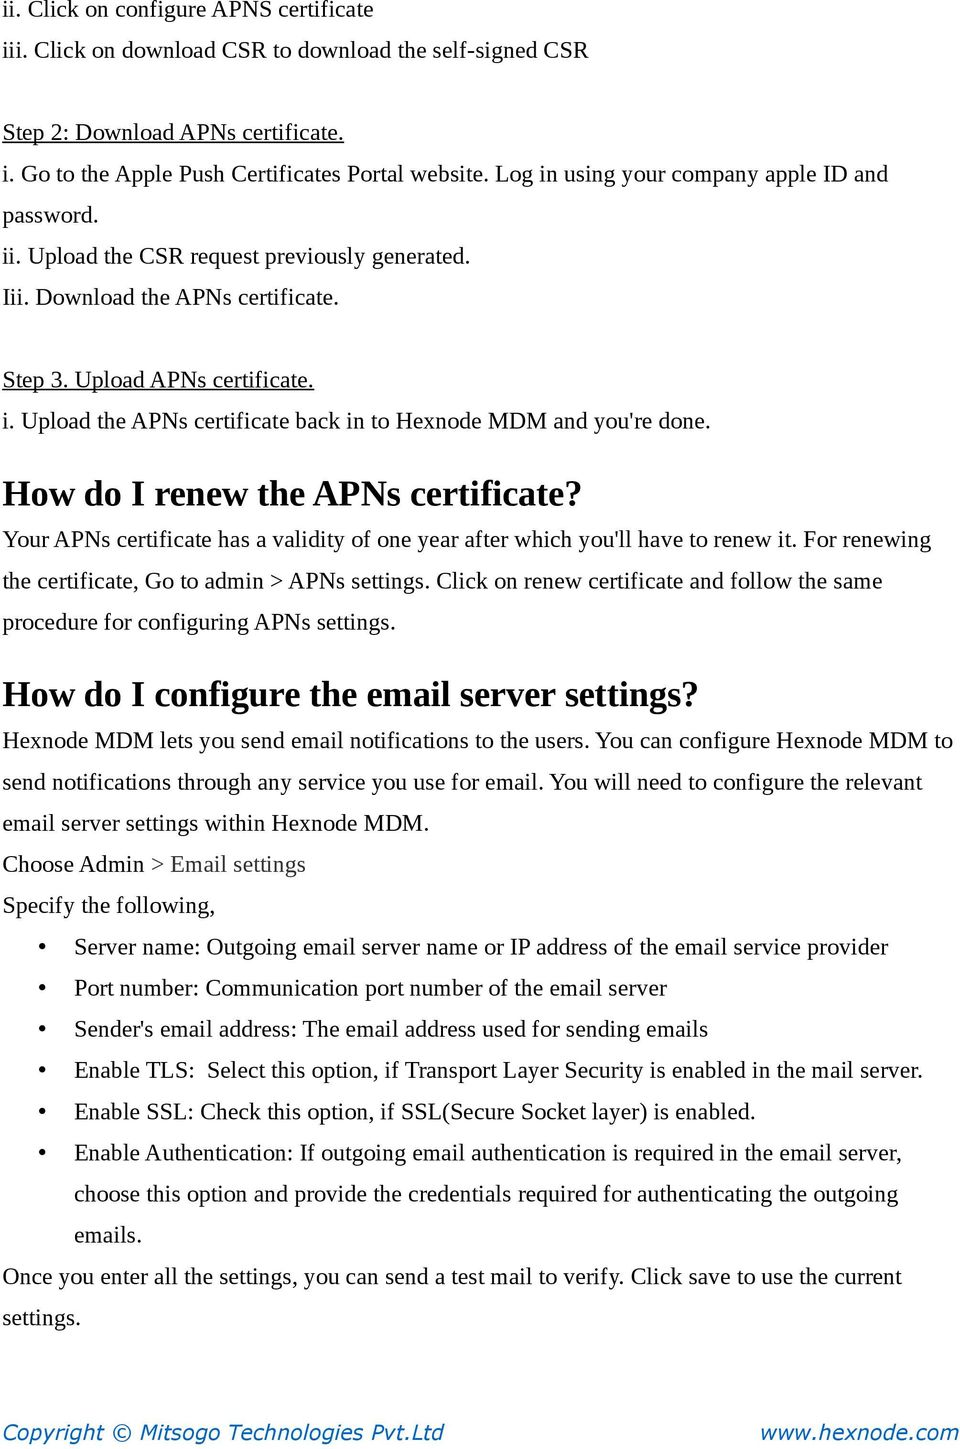 How do I renew the APNs certificate? Your APNs certificate has a validity of one year after which you'll have to renew it. For renewing the certificate, Go to admin > APNs settings.